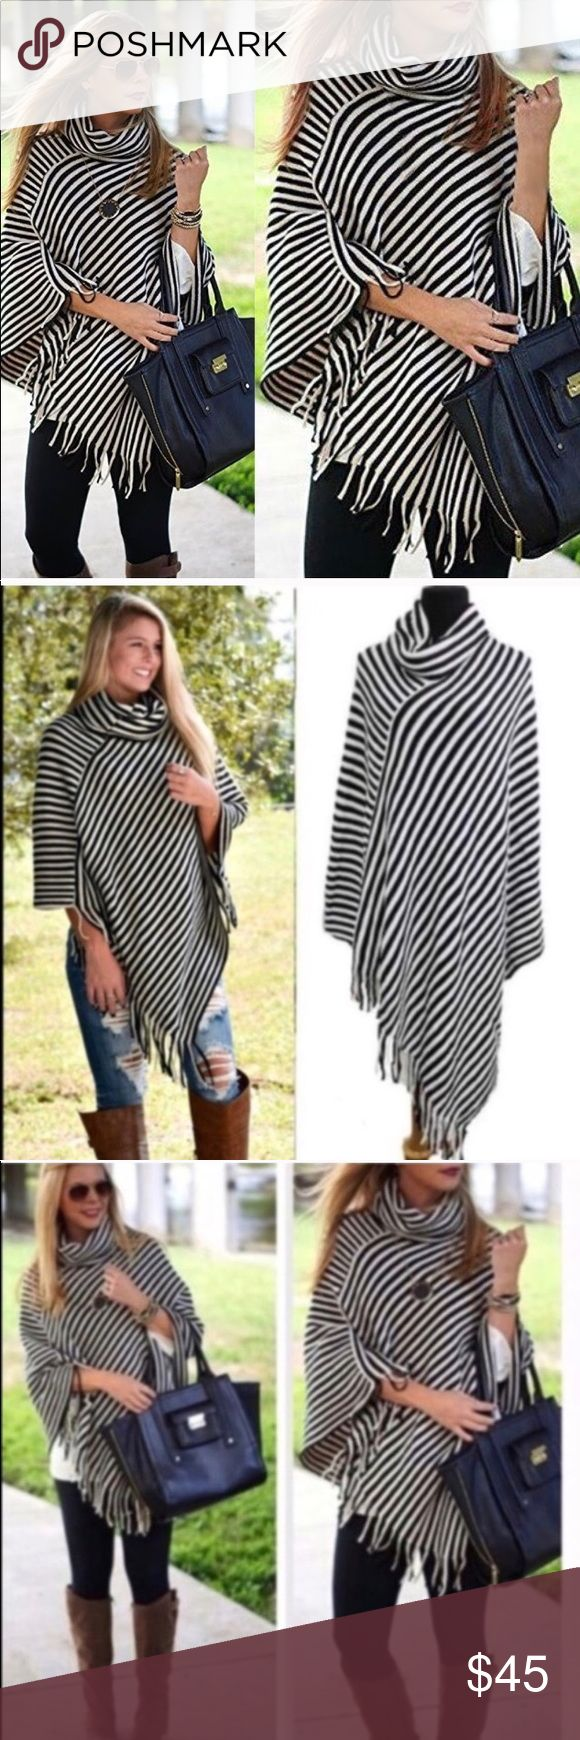 TODAY ONLY FOR THE LAST ONE... GOING ON SALE Gorgeous poncho!!! Accessories